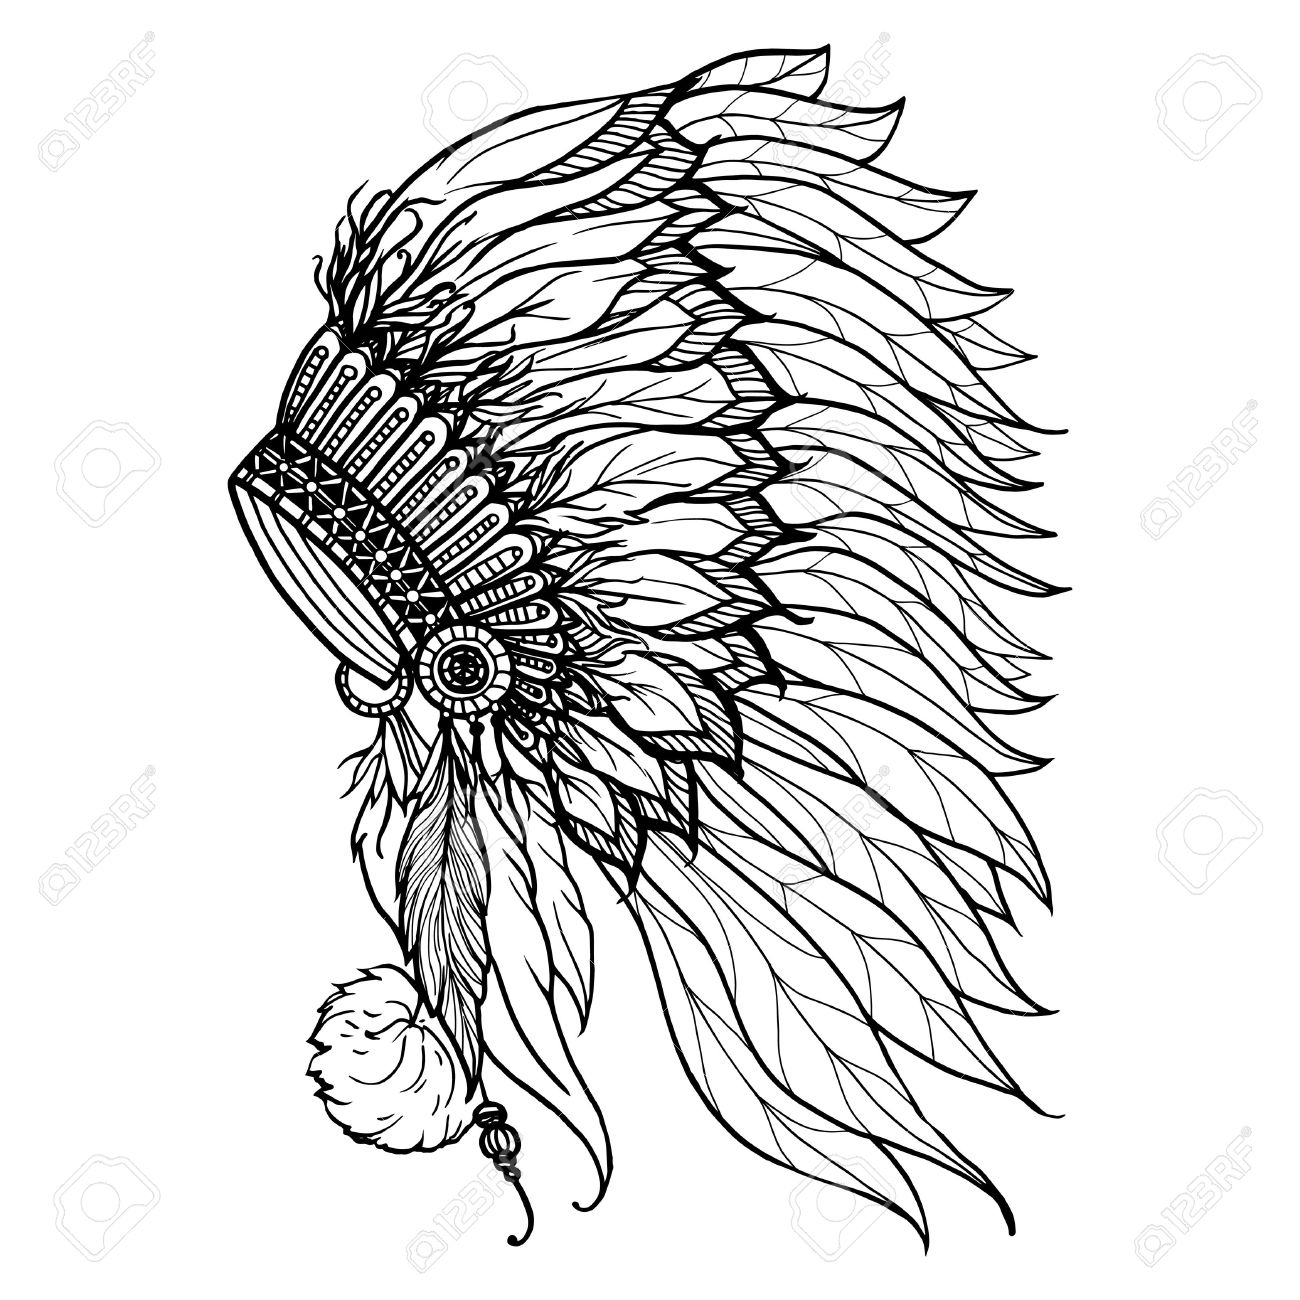 hight resolution of 1300x1300 native american headdress drawing doodle headdress for native